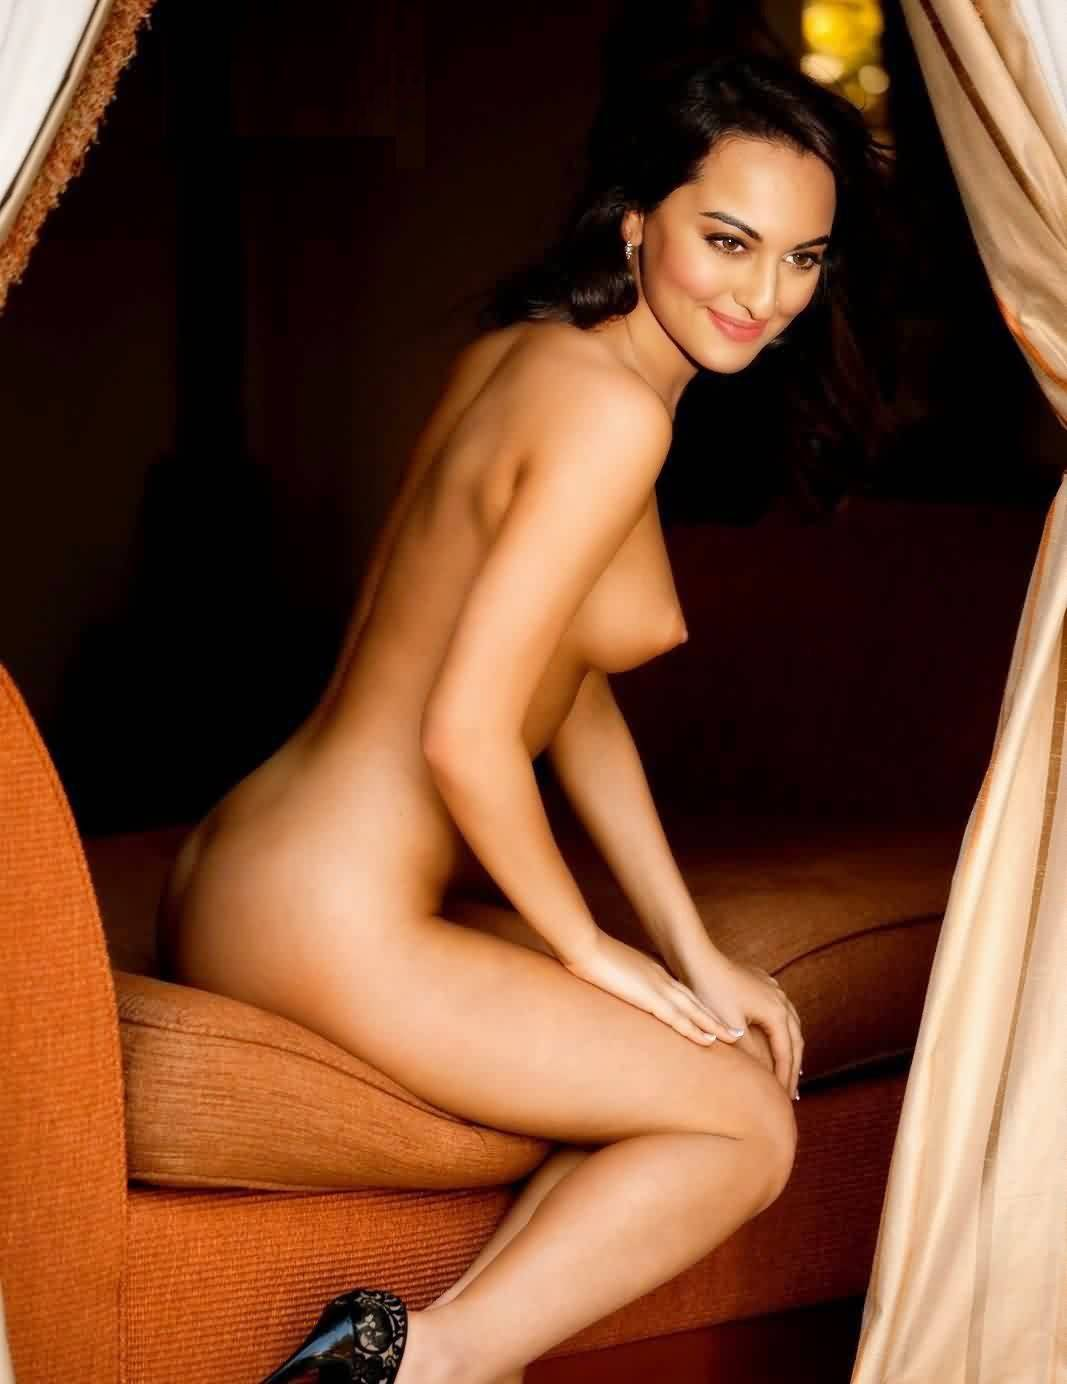 sonakshi nude images during sex